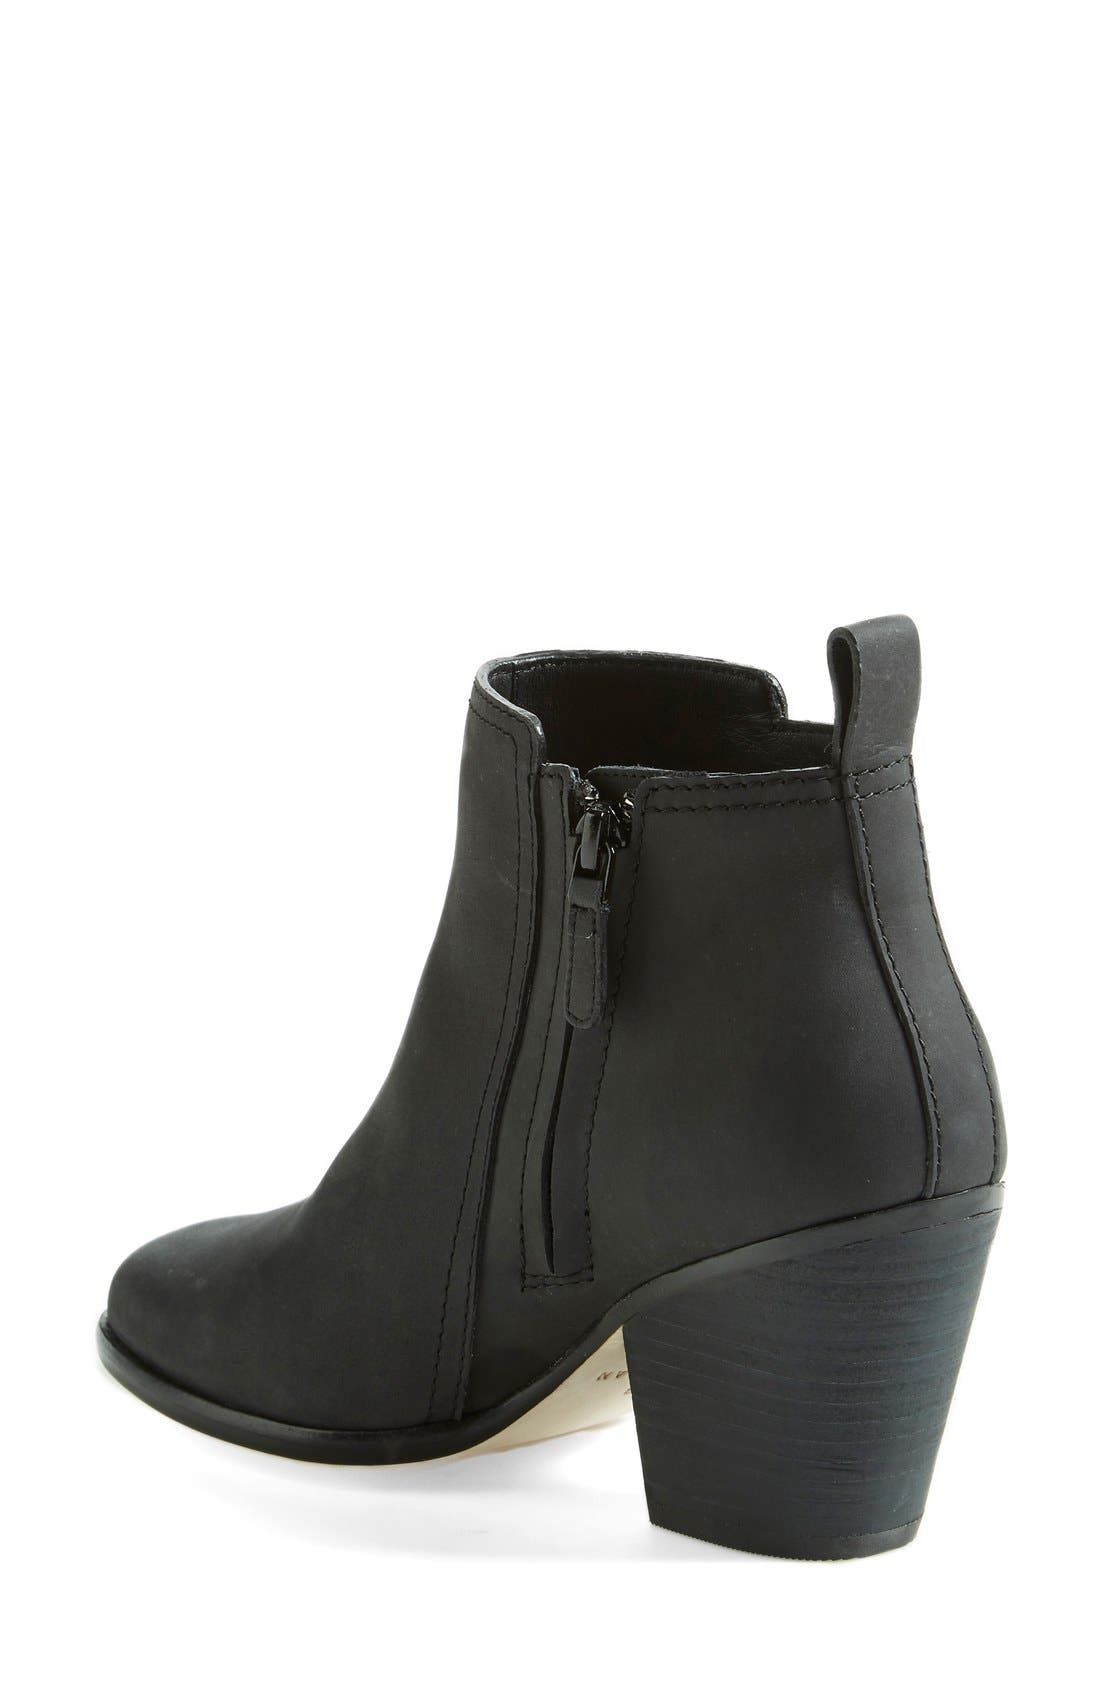 COLE HAAN,                             'Chesney' Round Toe Bootie,                             Alternate thumbnail 2, color,                             001